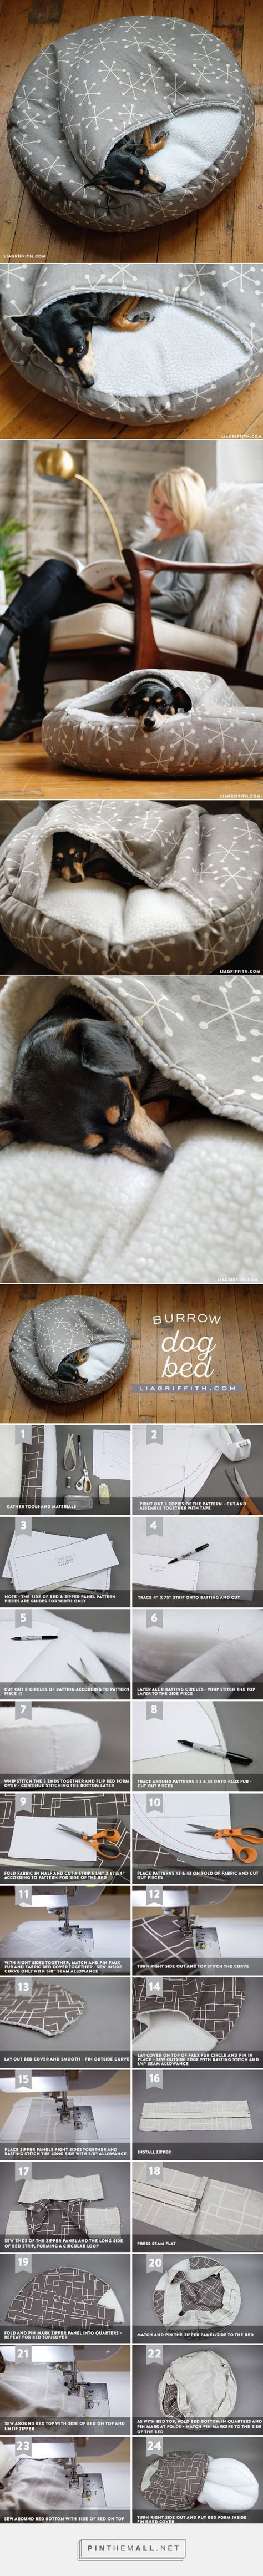 DIY Pet Bed - Pawsome! DIYPets I PetBed I HomeMadePetBed I DIY Pet Projects - Tap the pin for the most adorable pawtastic fur baby apparel! You'll love the dog clothes and cat clothes! <3